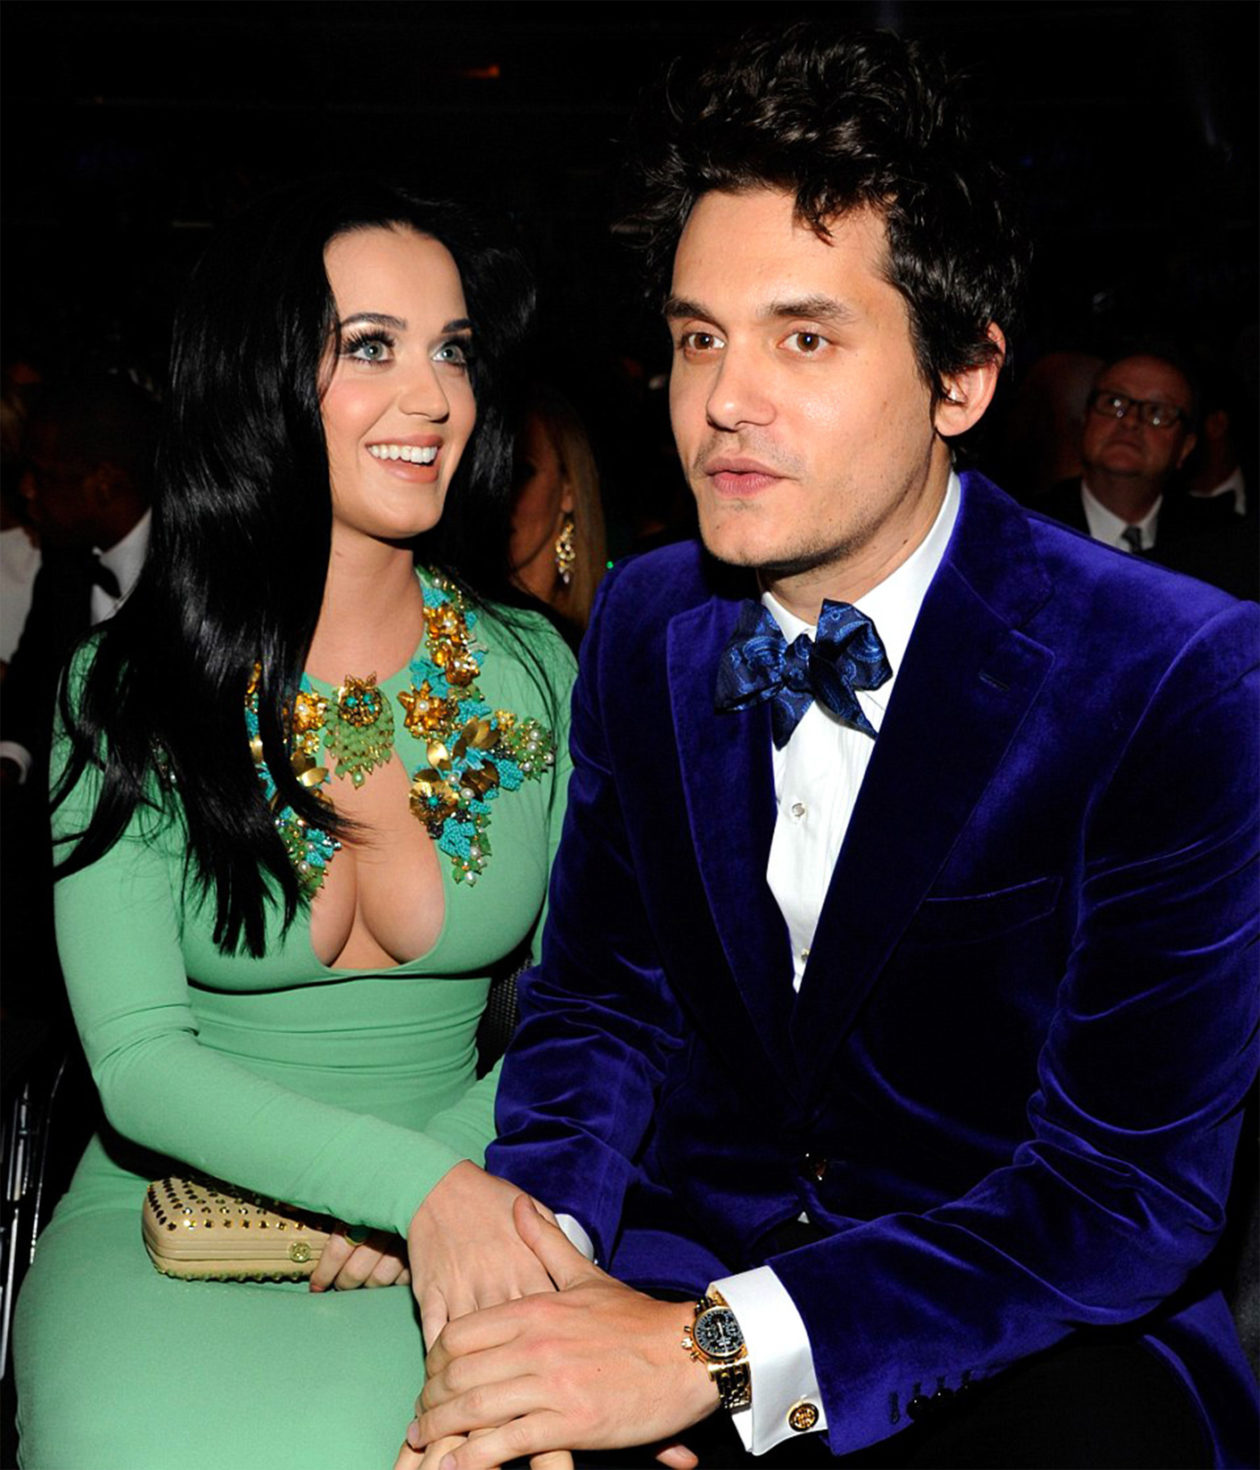 Katy Perry and John Mayer / photo: www.grammy.com